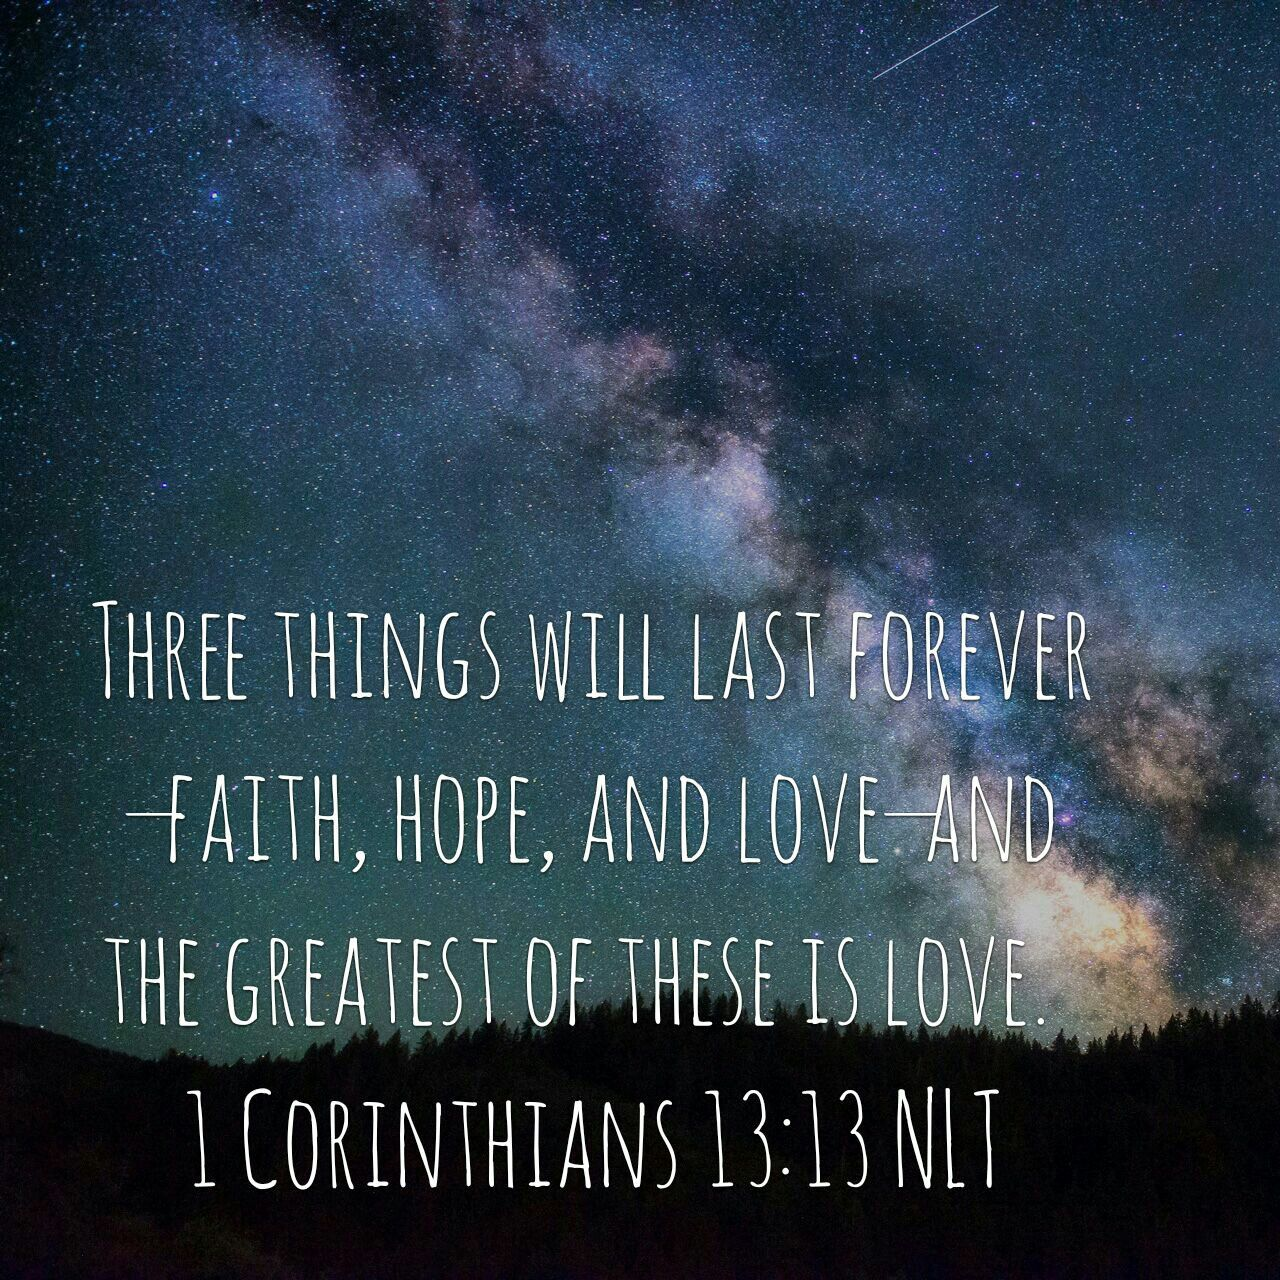 Pin by Marjorie Green on Jesus Bible apps, First love